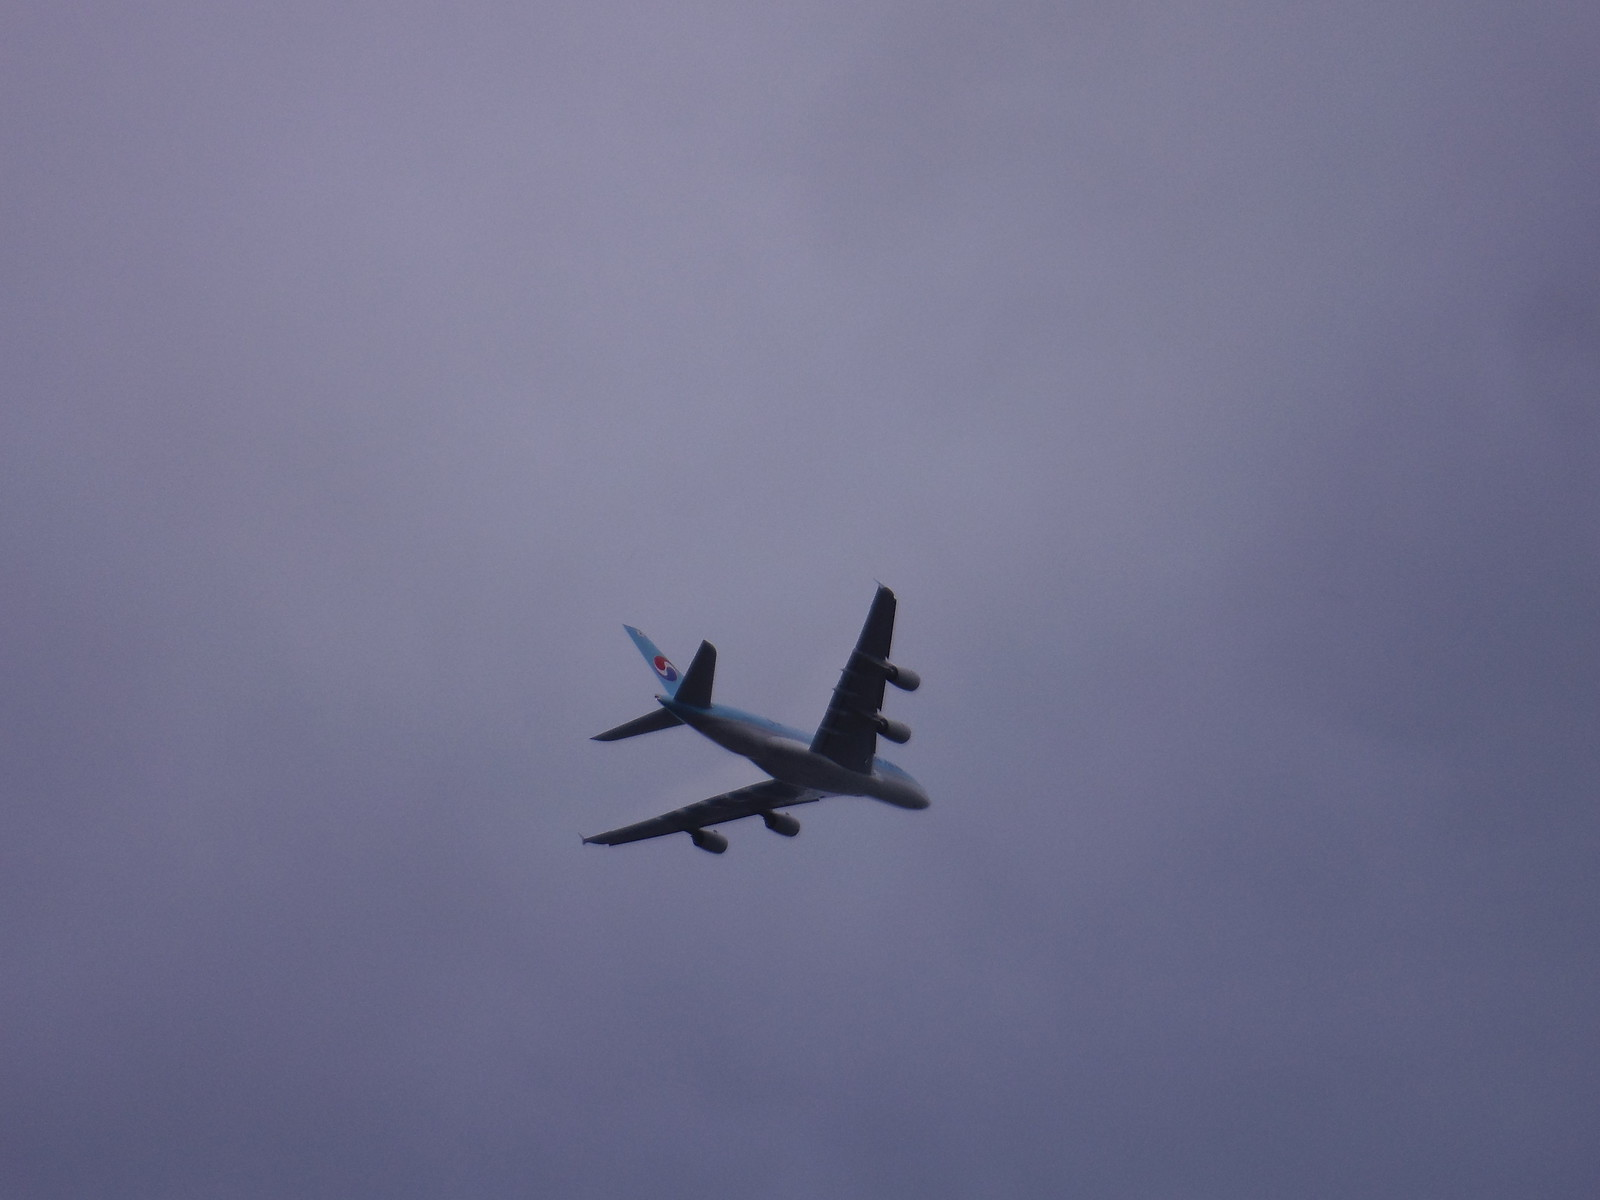 Under the Heathrow flightpath (Korean Air?) SWC Short Walk 22 - Boston Manor to Osterley